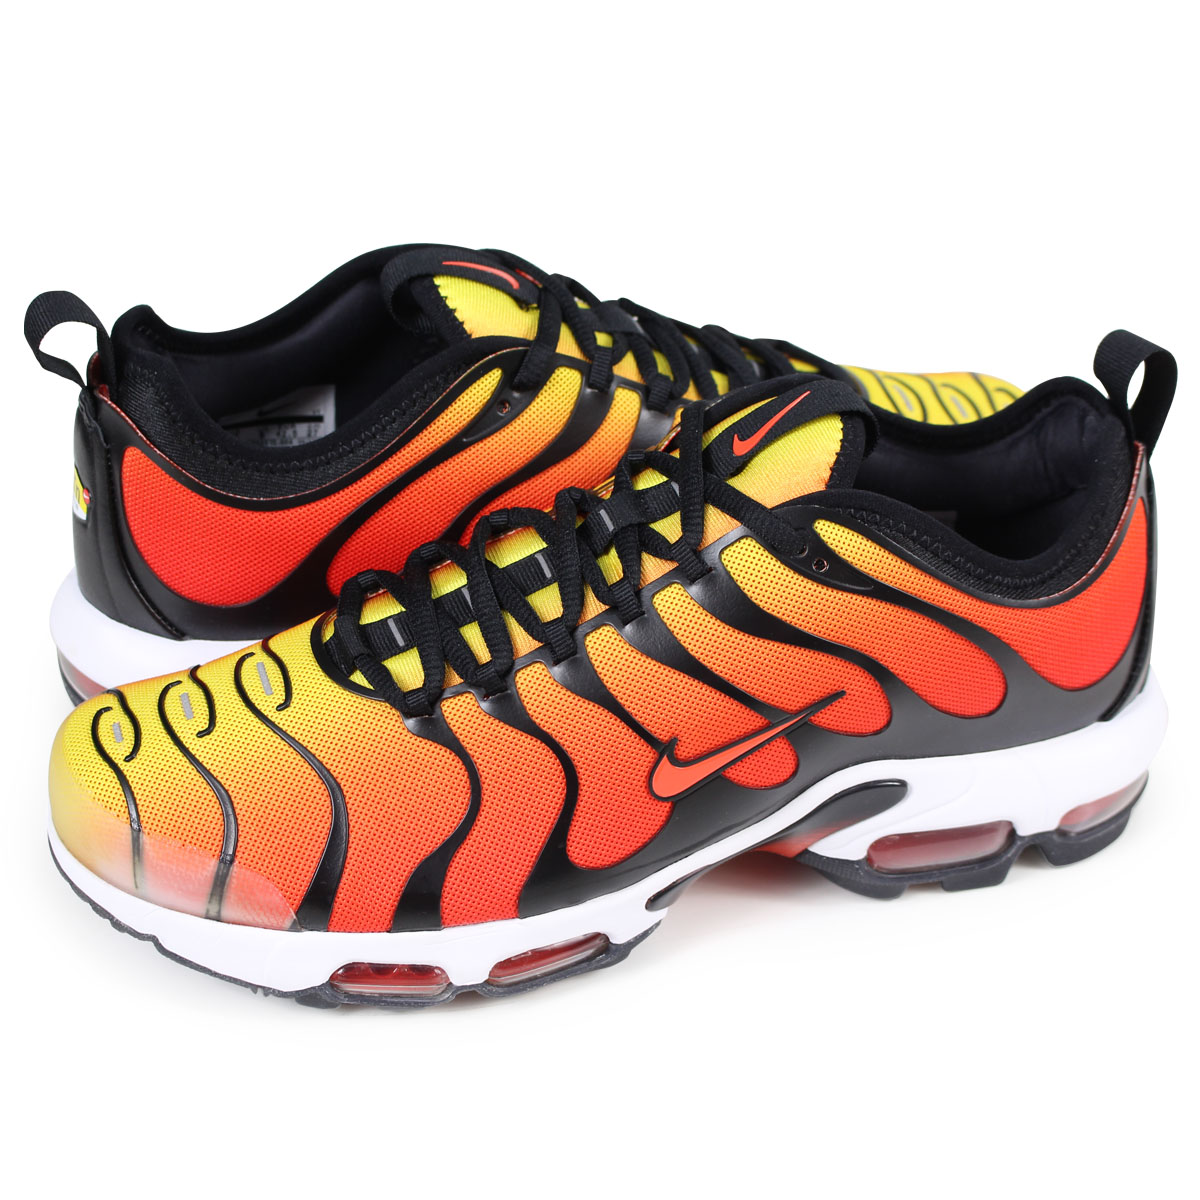 wholesale dealer e8281 513aa NIKE AIR MAX PLUS TN ULTRA Kie Ney AMAX plus sneakers men 898,015-004 orange  ...